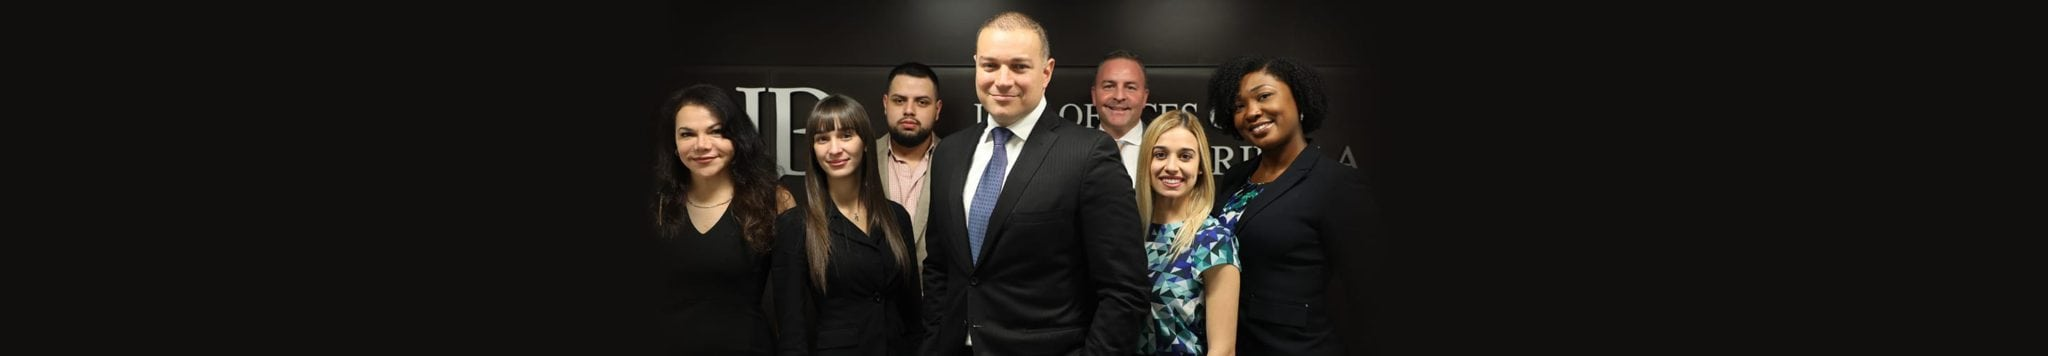 DLE lawyers team members